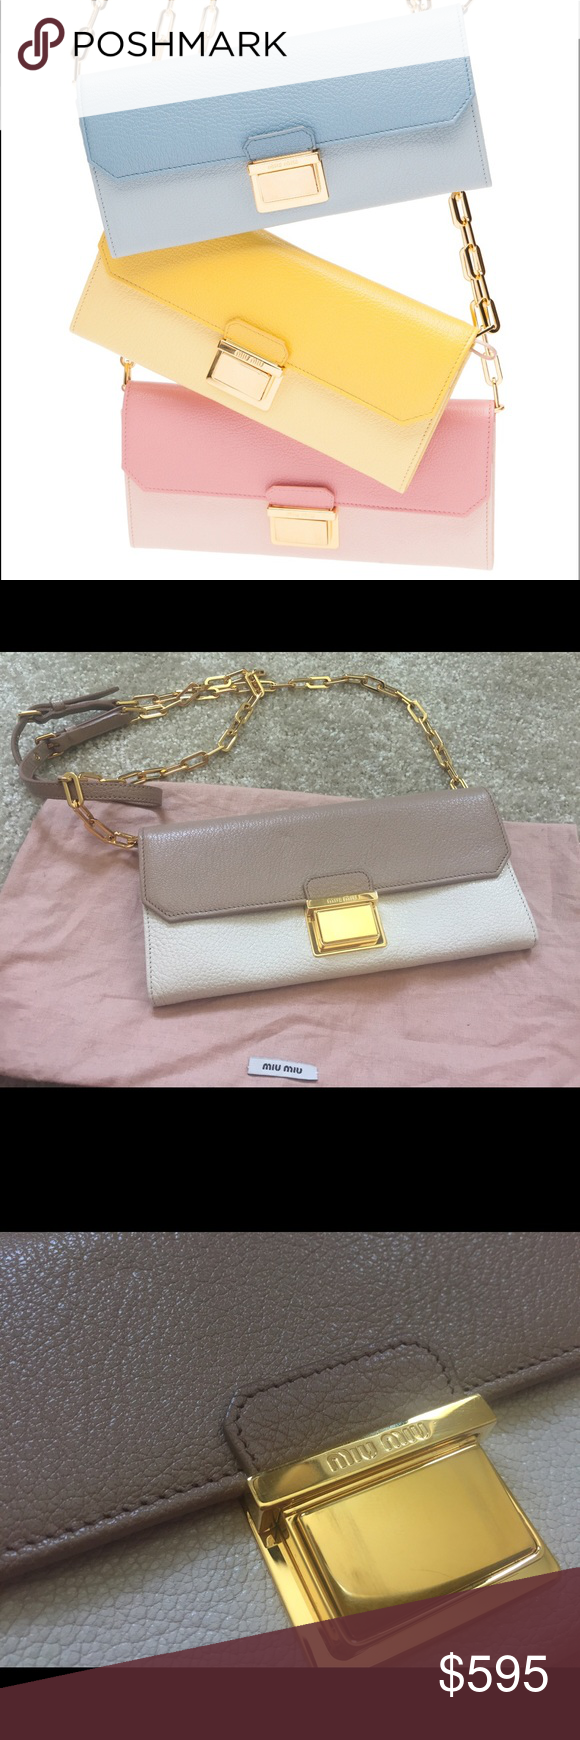 SP/SM Miu Miu WOC Wallet Chain Worn only once. This color is highly sought after and sold out. Poudre/nude bi-color two-tone chain wallet. Very versatile and beautiful color. Clean interior and exterior. Excellent condition from only one time use. Only faint stretches to front hardware. Comes with dustbag. Lots of space and card slots inside. 100% authentic. Miu Miu Bags Wallets